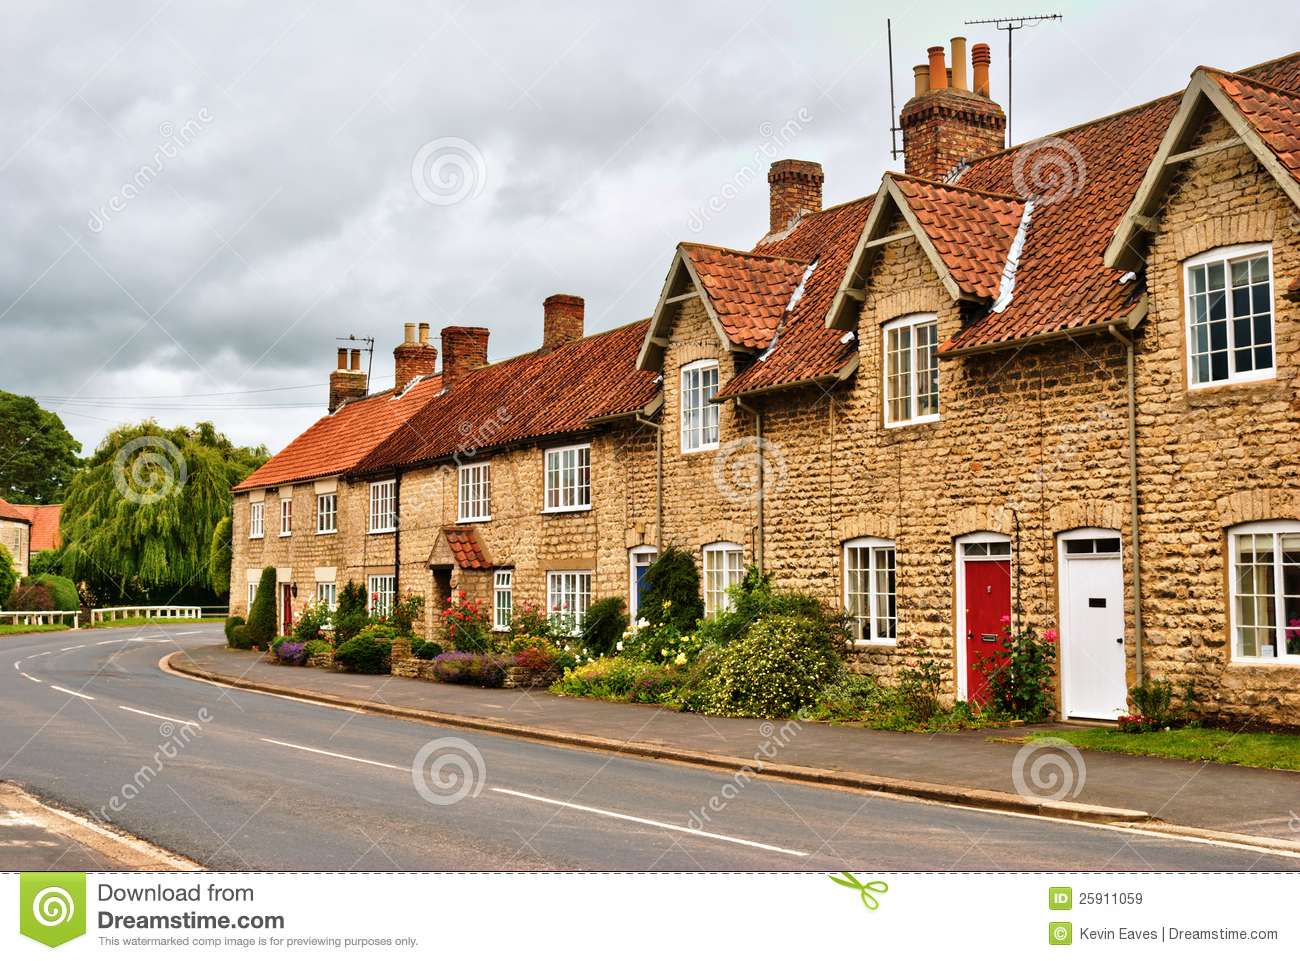 Learn To Say Rooms In A House In Mandarin Chinese together with Stock Photos Vinyl Singles 45s Image1828793 besides Royalty Free Stock Images Quaint Row English Village Houses Image25911059 additionally Stock Image Date Palm Tree Dates Close Up Photograph Tropical Climate Image34552261 likewise Editorial Stock Photo Traffic Jam Bucharest Romania April High Angle View One S Main Squares Victory Square Image42303538. on house room animation